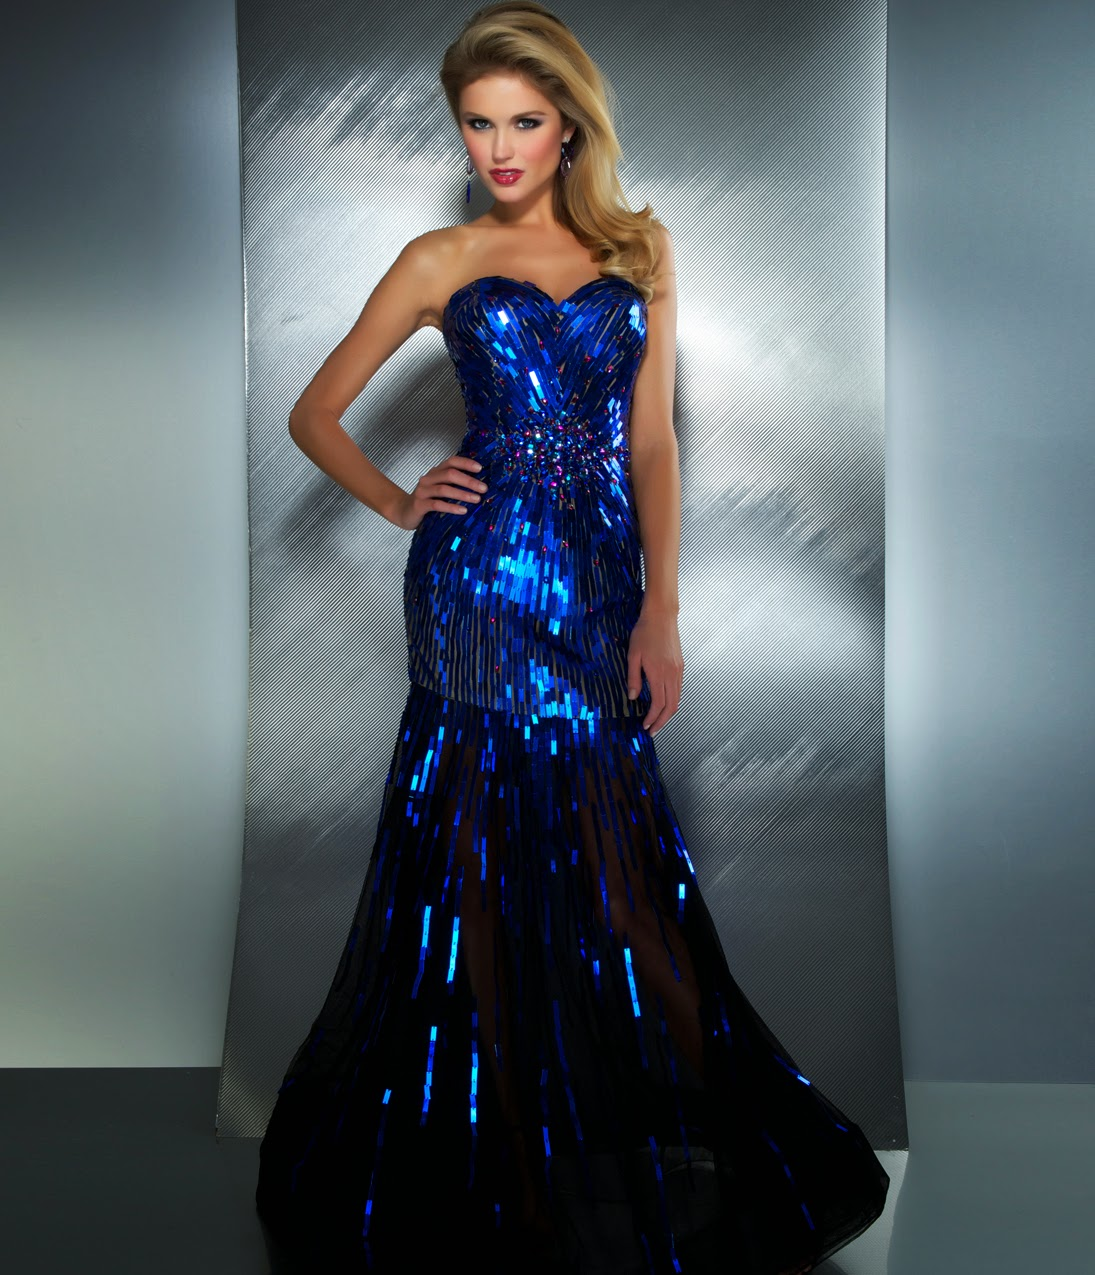 Fine Bella Prom Dress Pictures Inspiration Wedding Dress Ideas